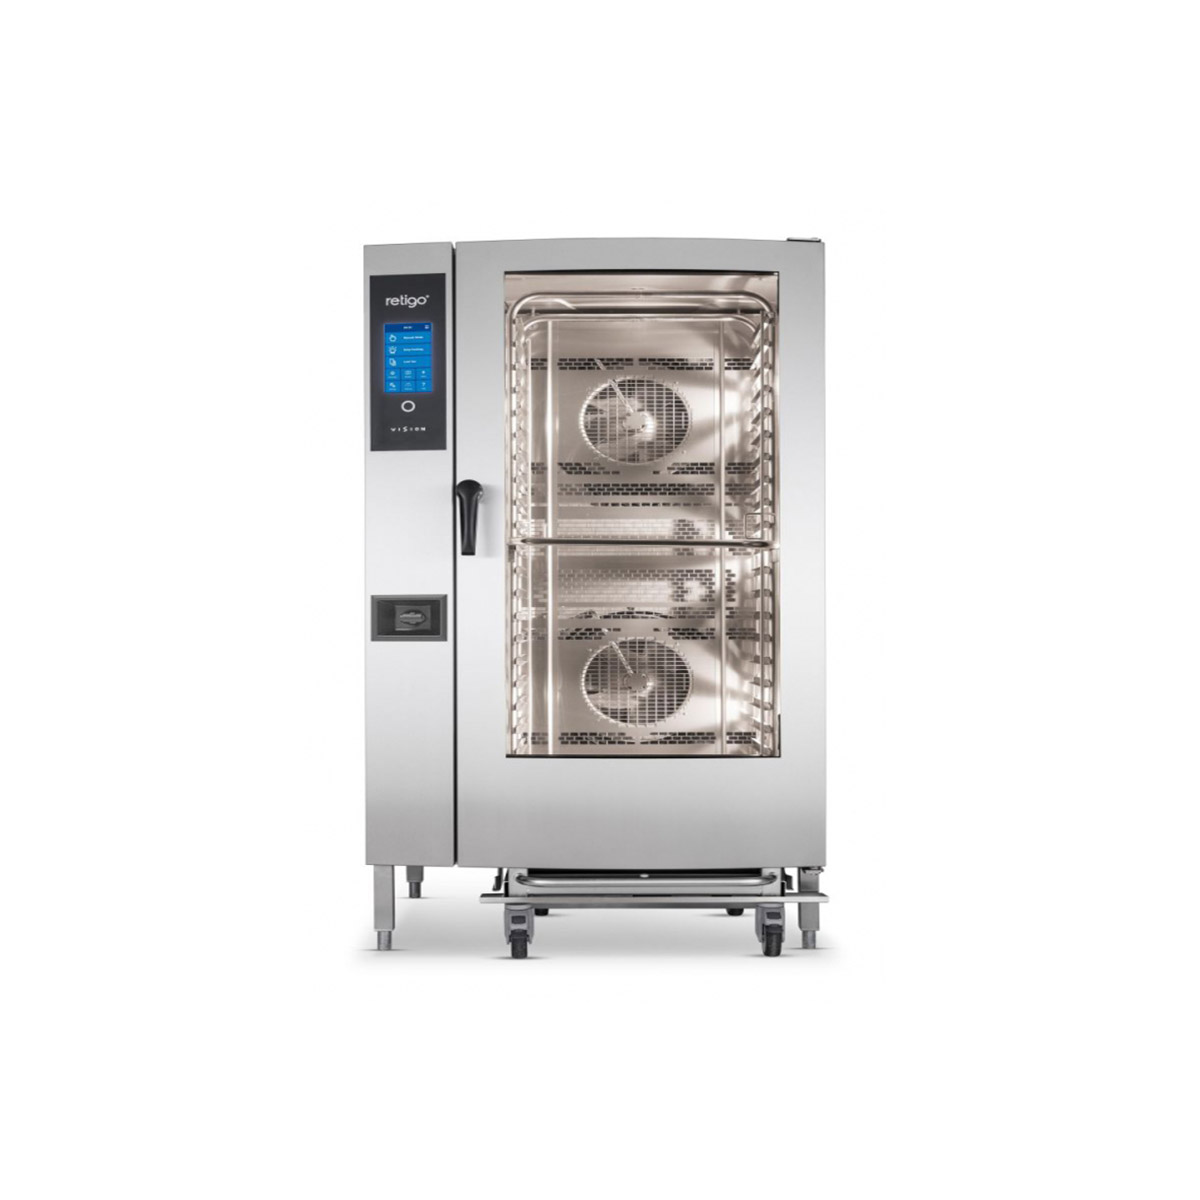 Retigo Blue Vision 20x Grid Combination Oven B2011ig